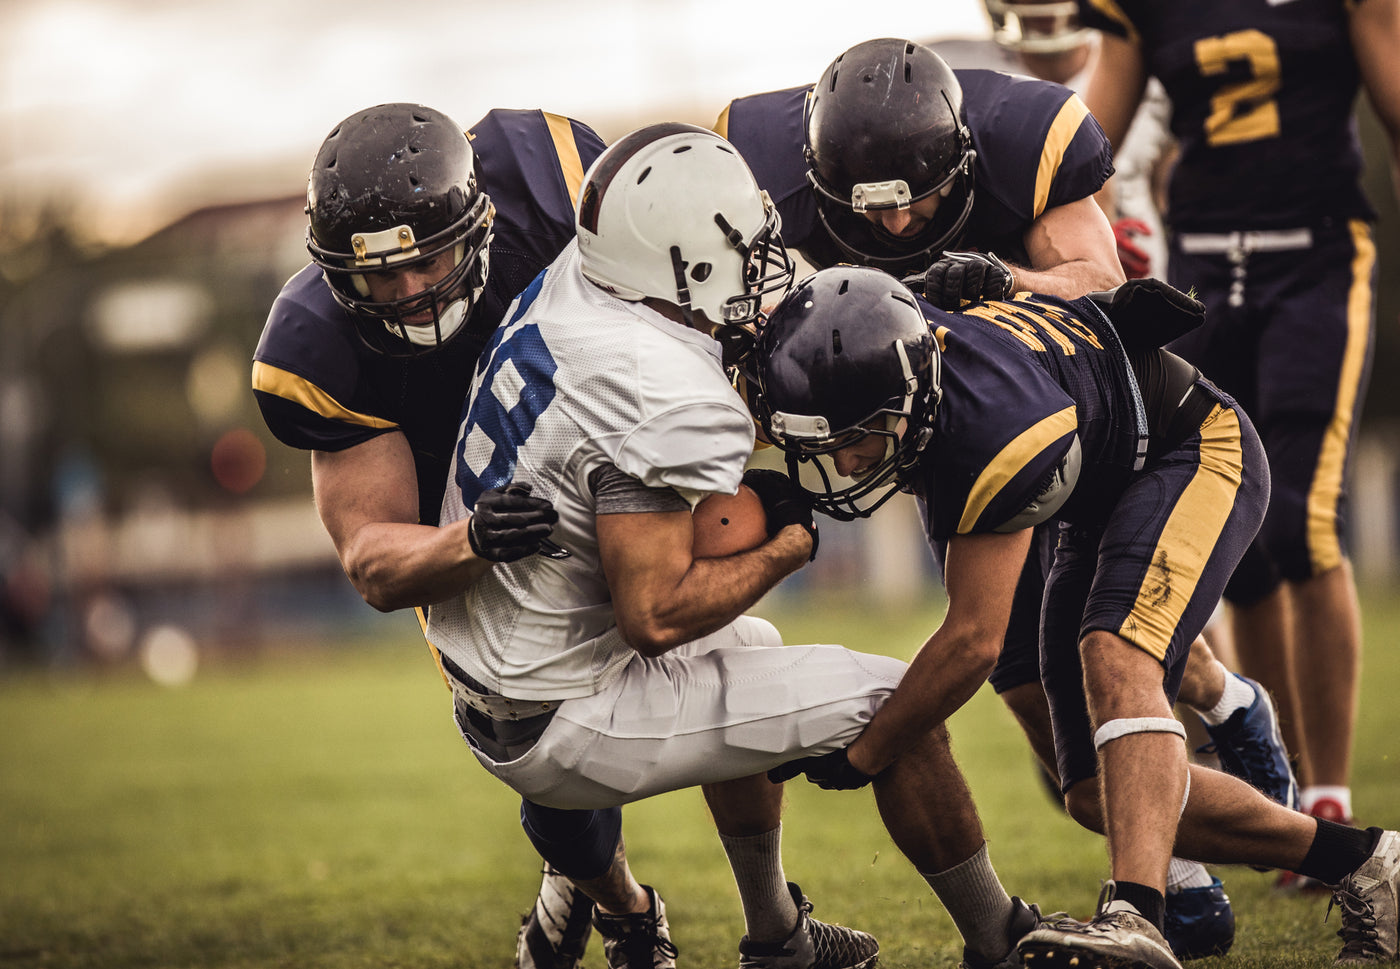 An image of a football player being tackled by three defenders.